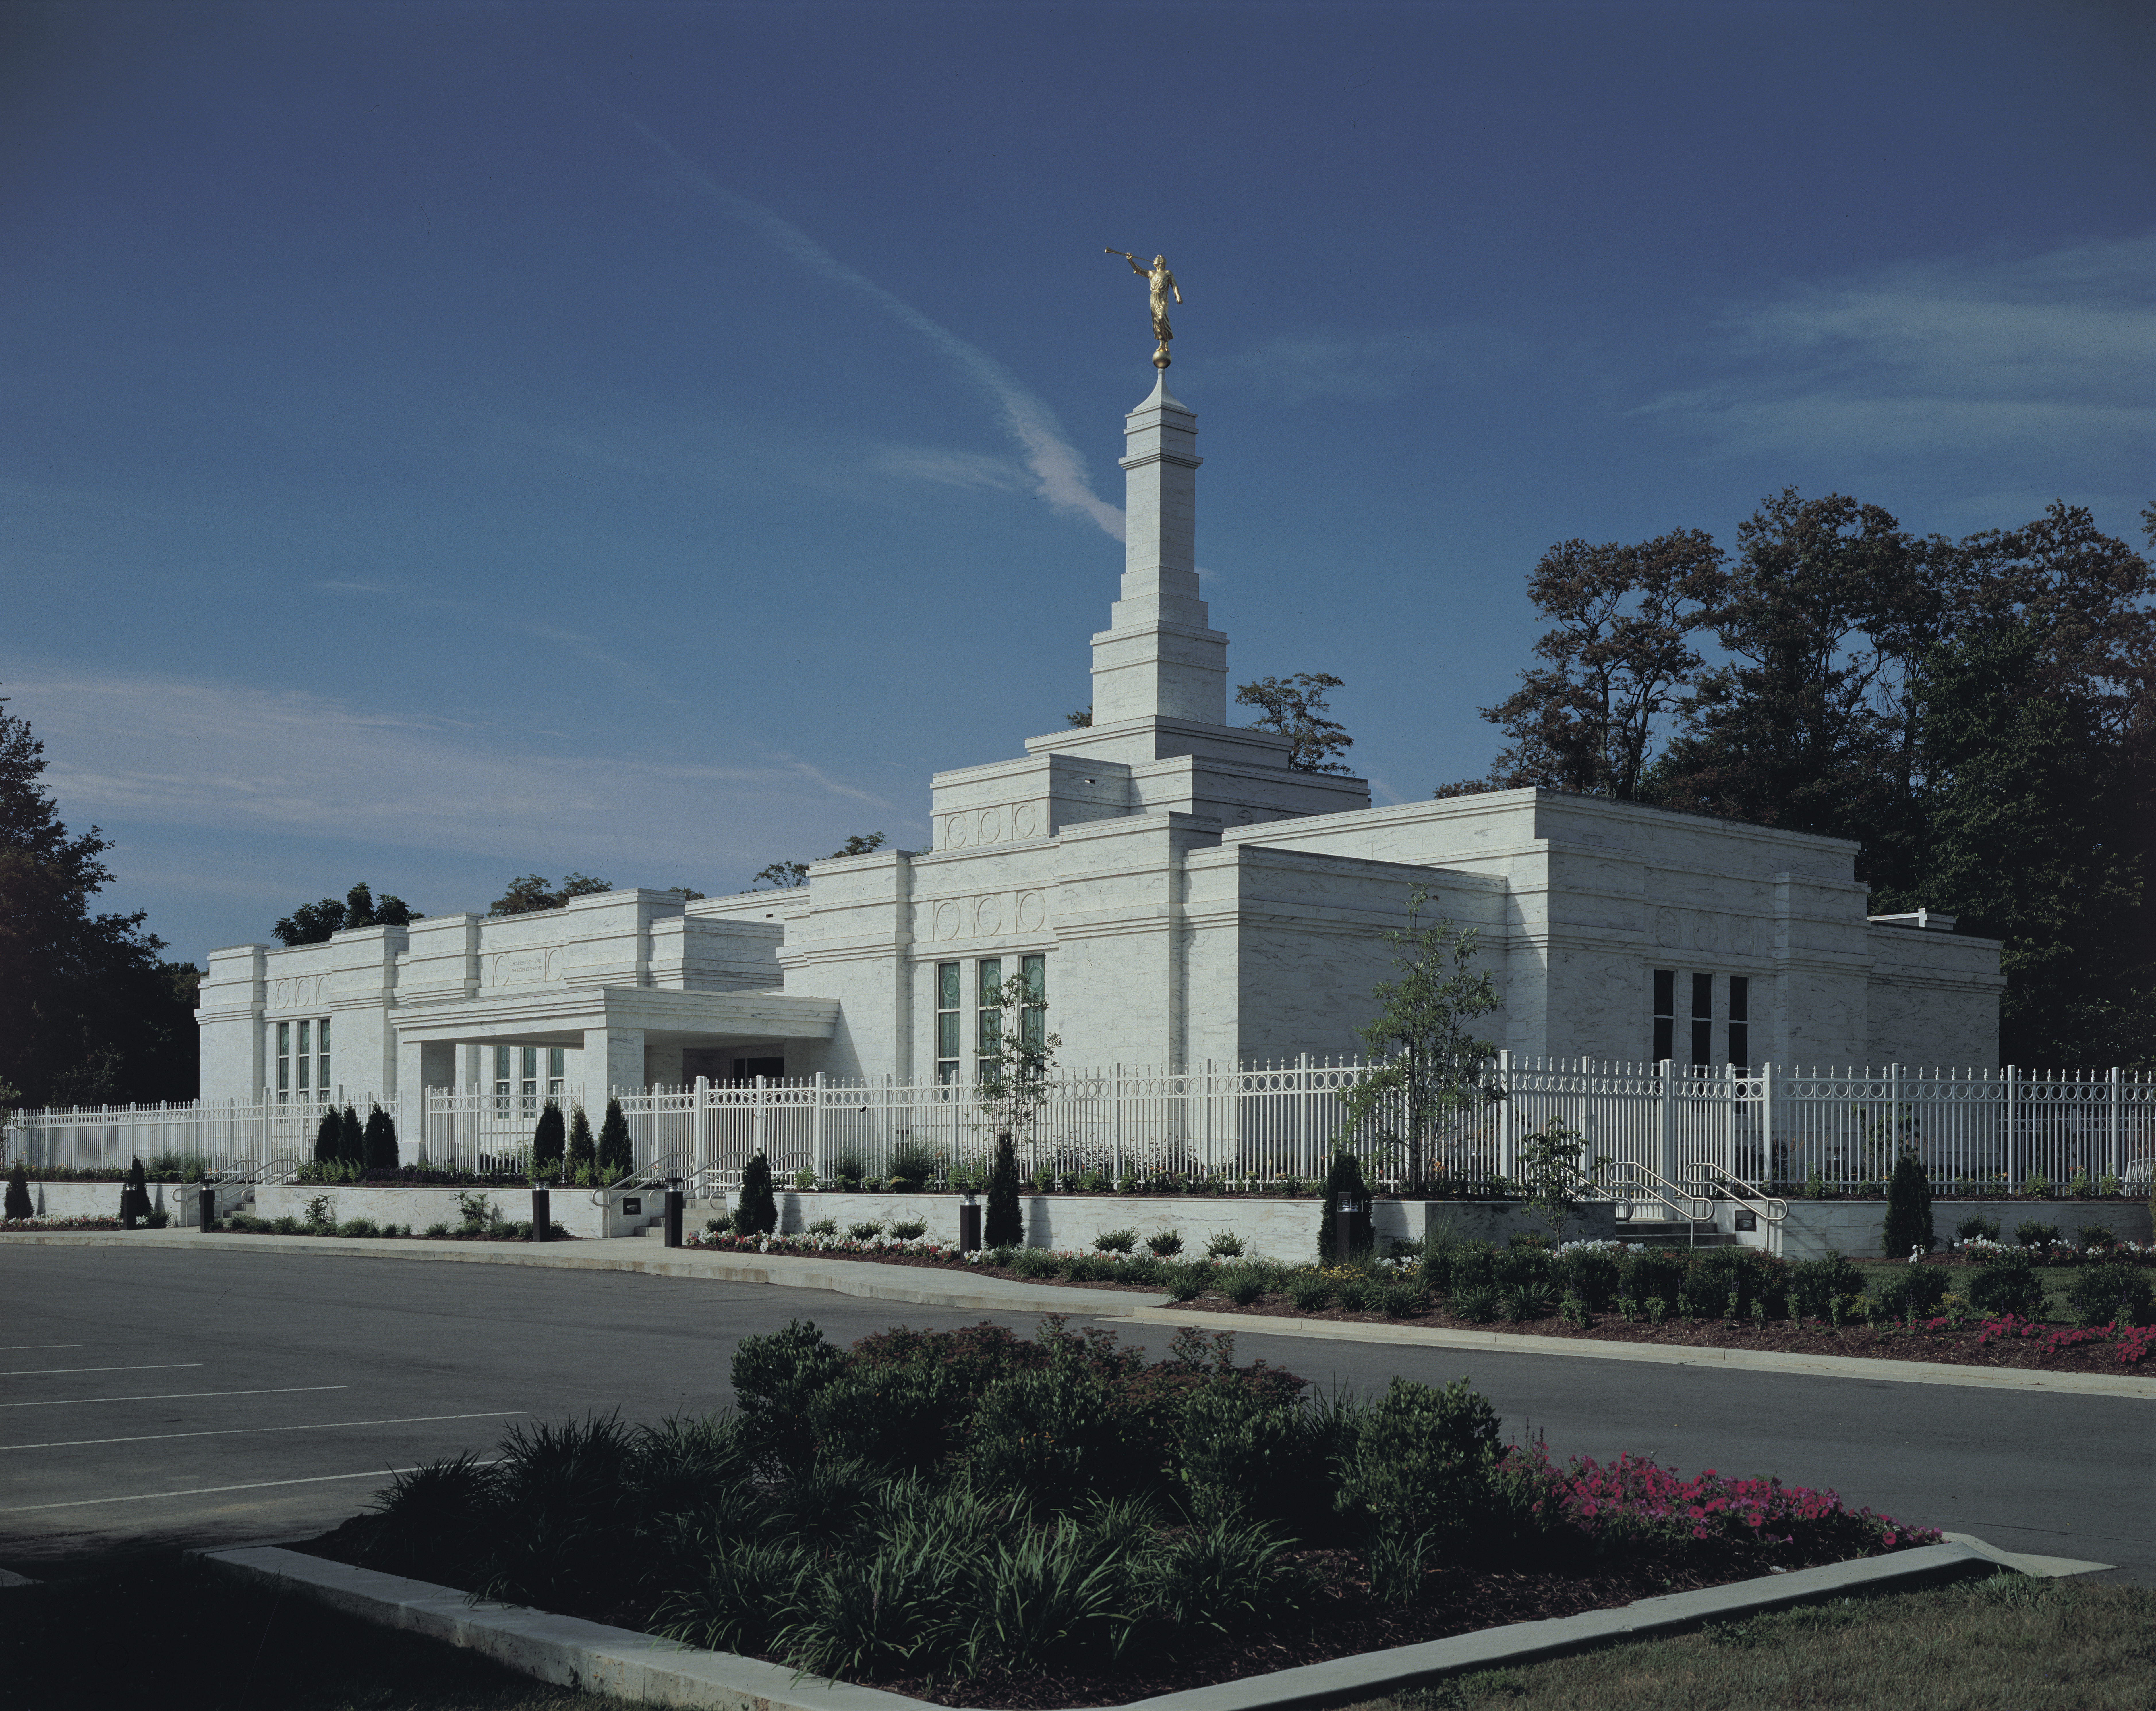 The entire Louisville Kentucky Temple, including the entrance and scenery.